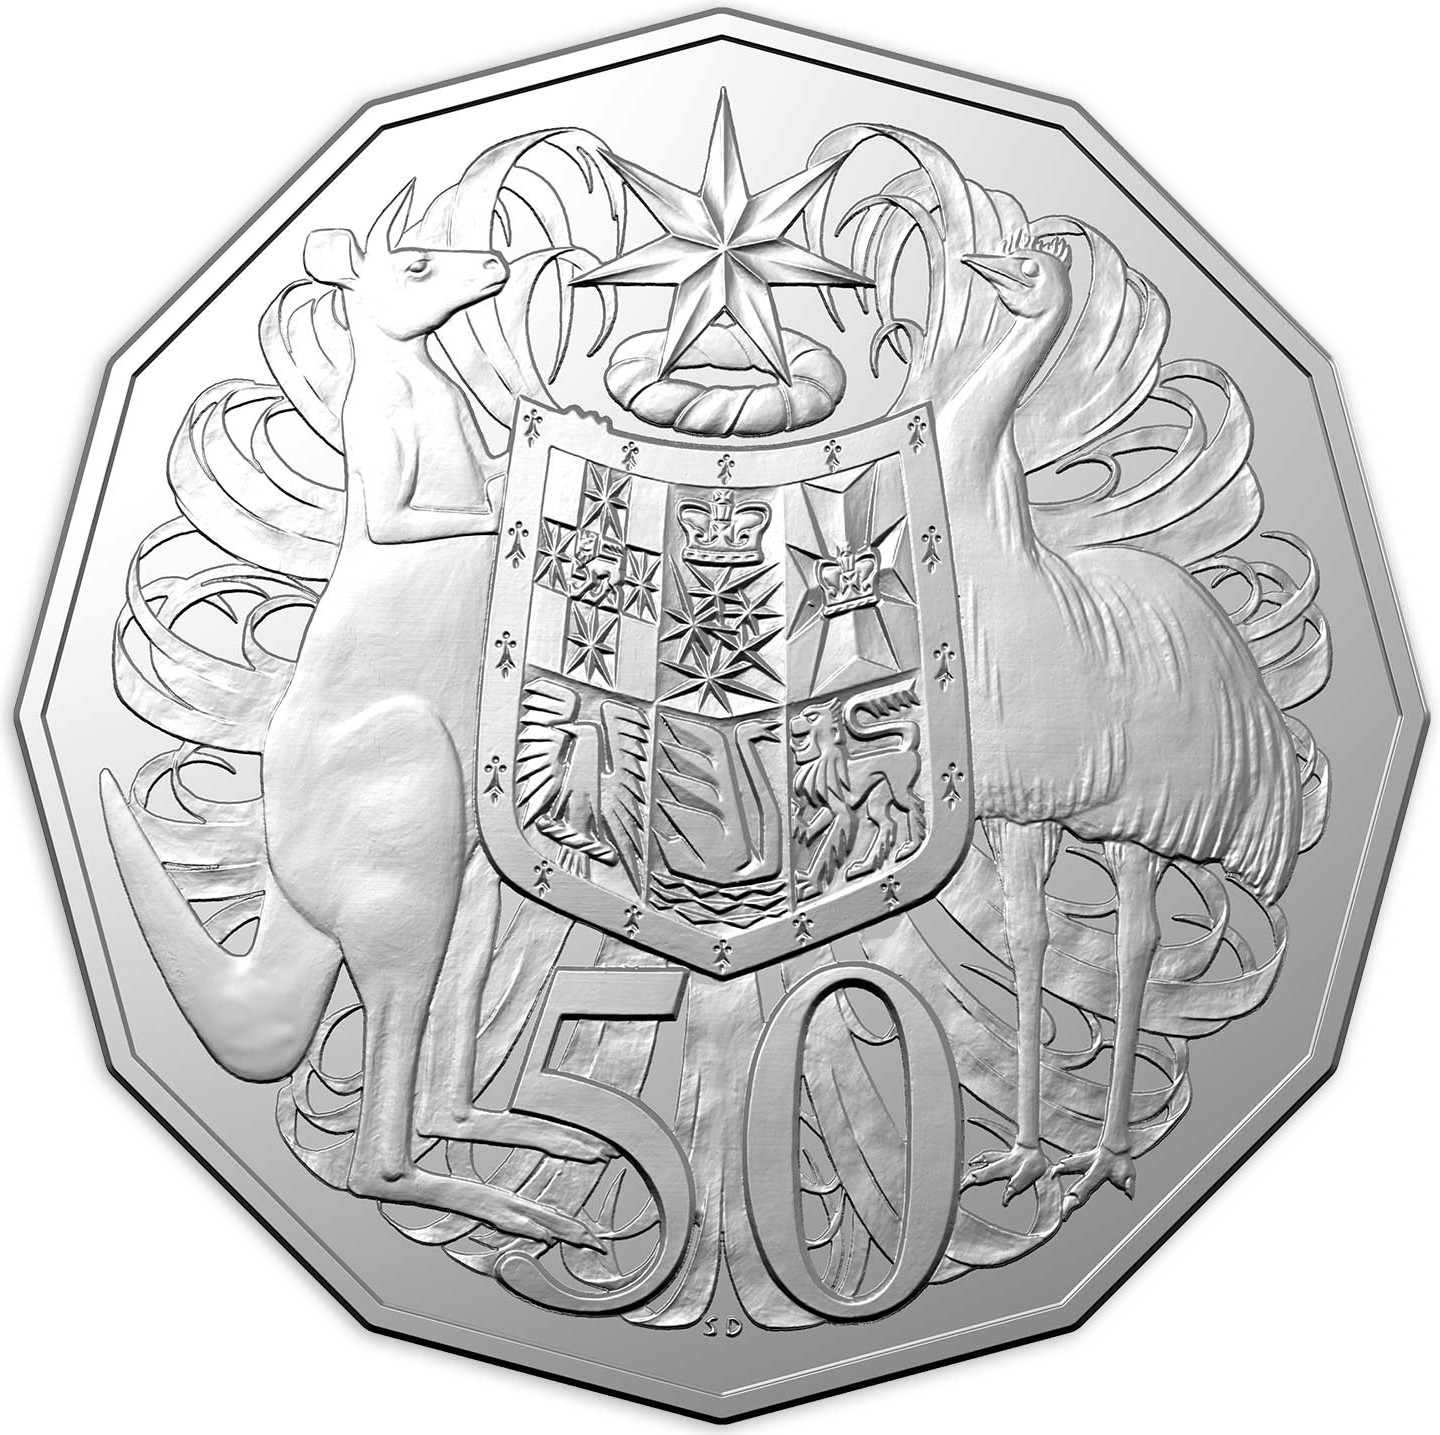 Low mintage ★ 2019 Proof 50 Cents 99.99/% silver